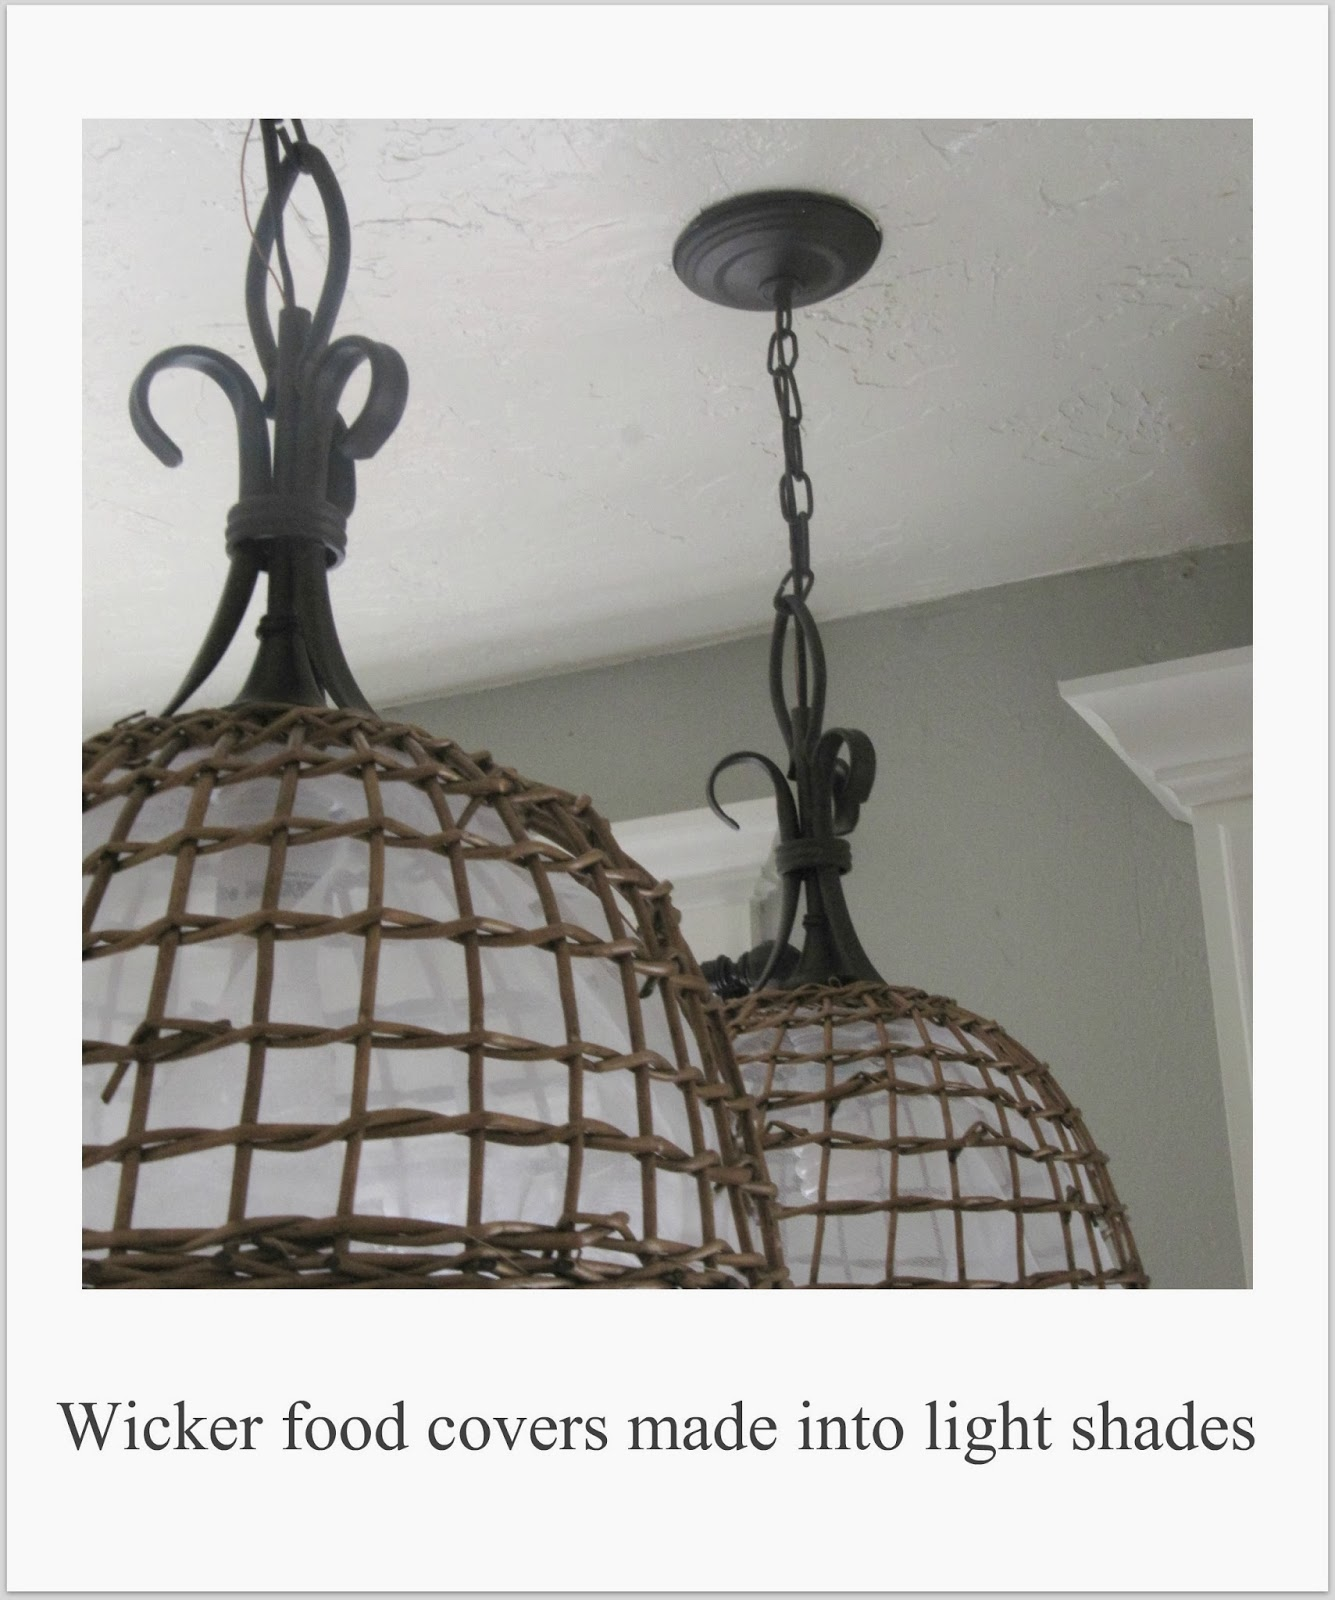 http://www.thewickerhouse.blogspot.com/2013/05/new-kitchen-lighting.html